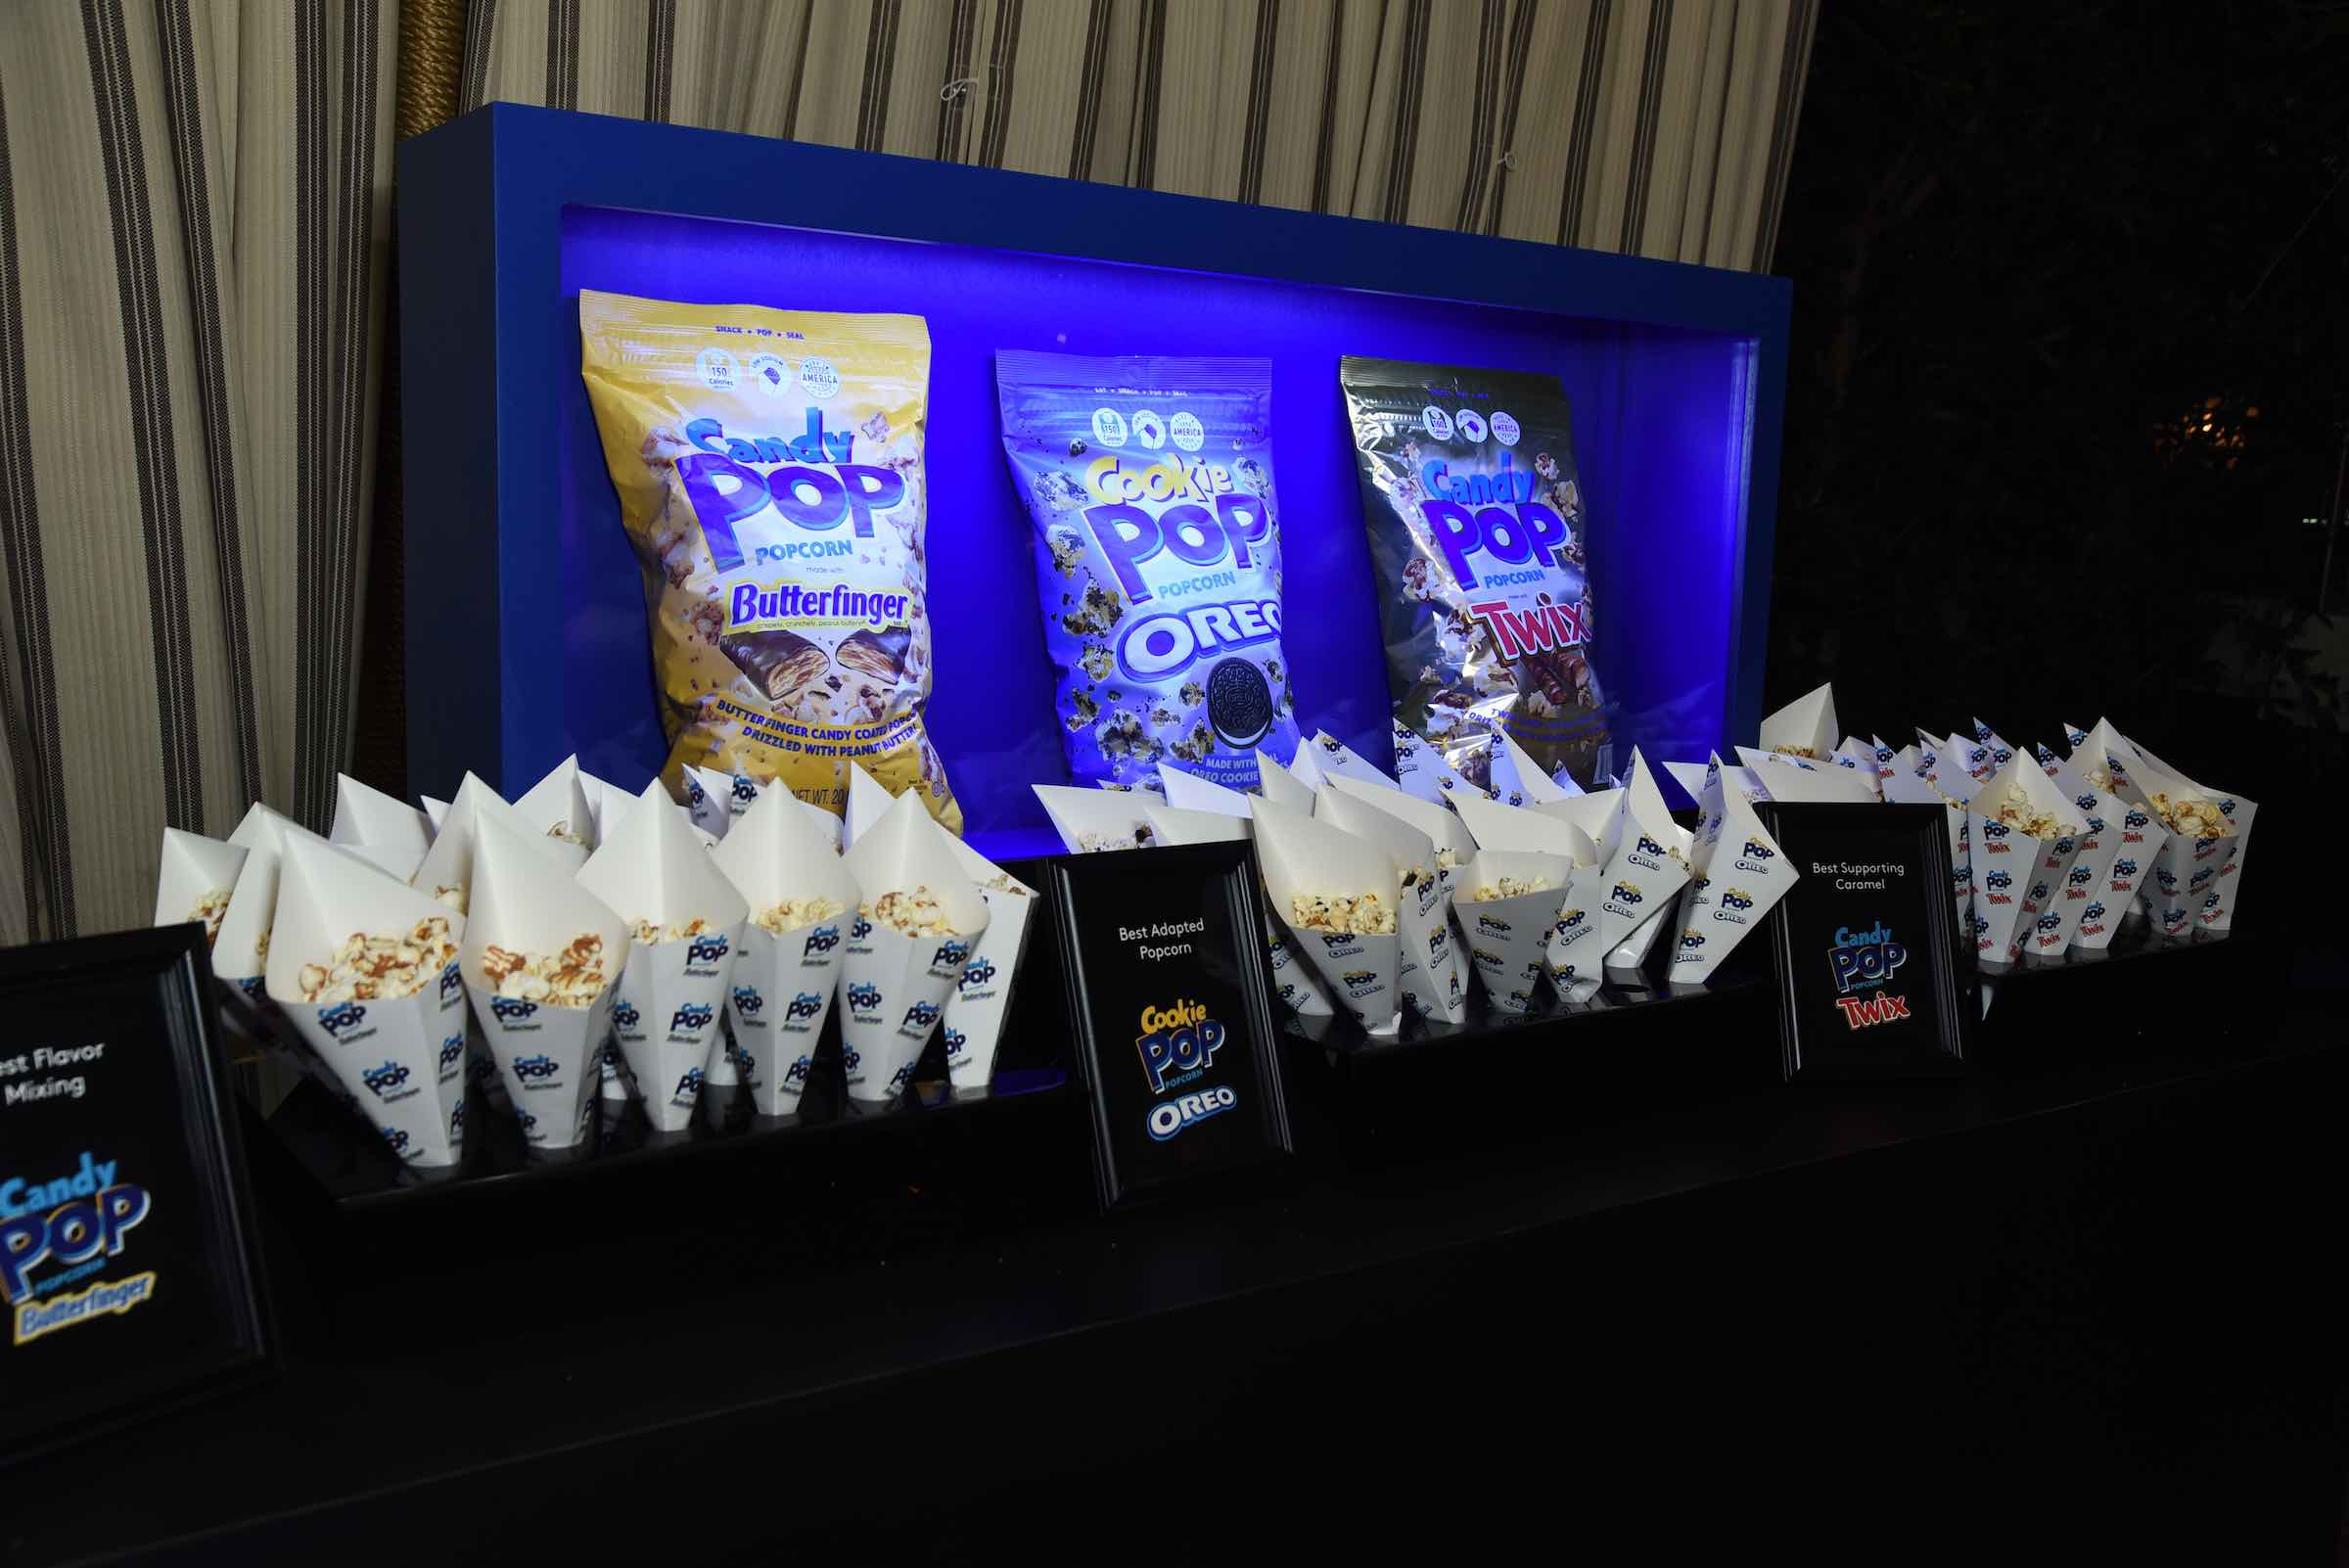 TThe Snack Pop Oreo Cookie Pop treats were too irresistible to pass up at the EW pre-SAG Awards party. SAG stars went popcorn crazy.